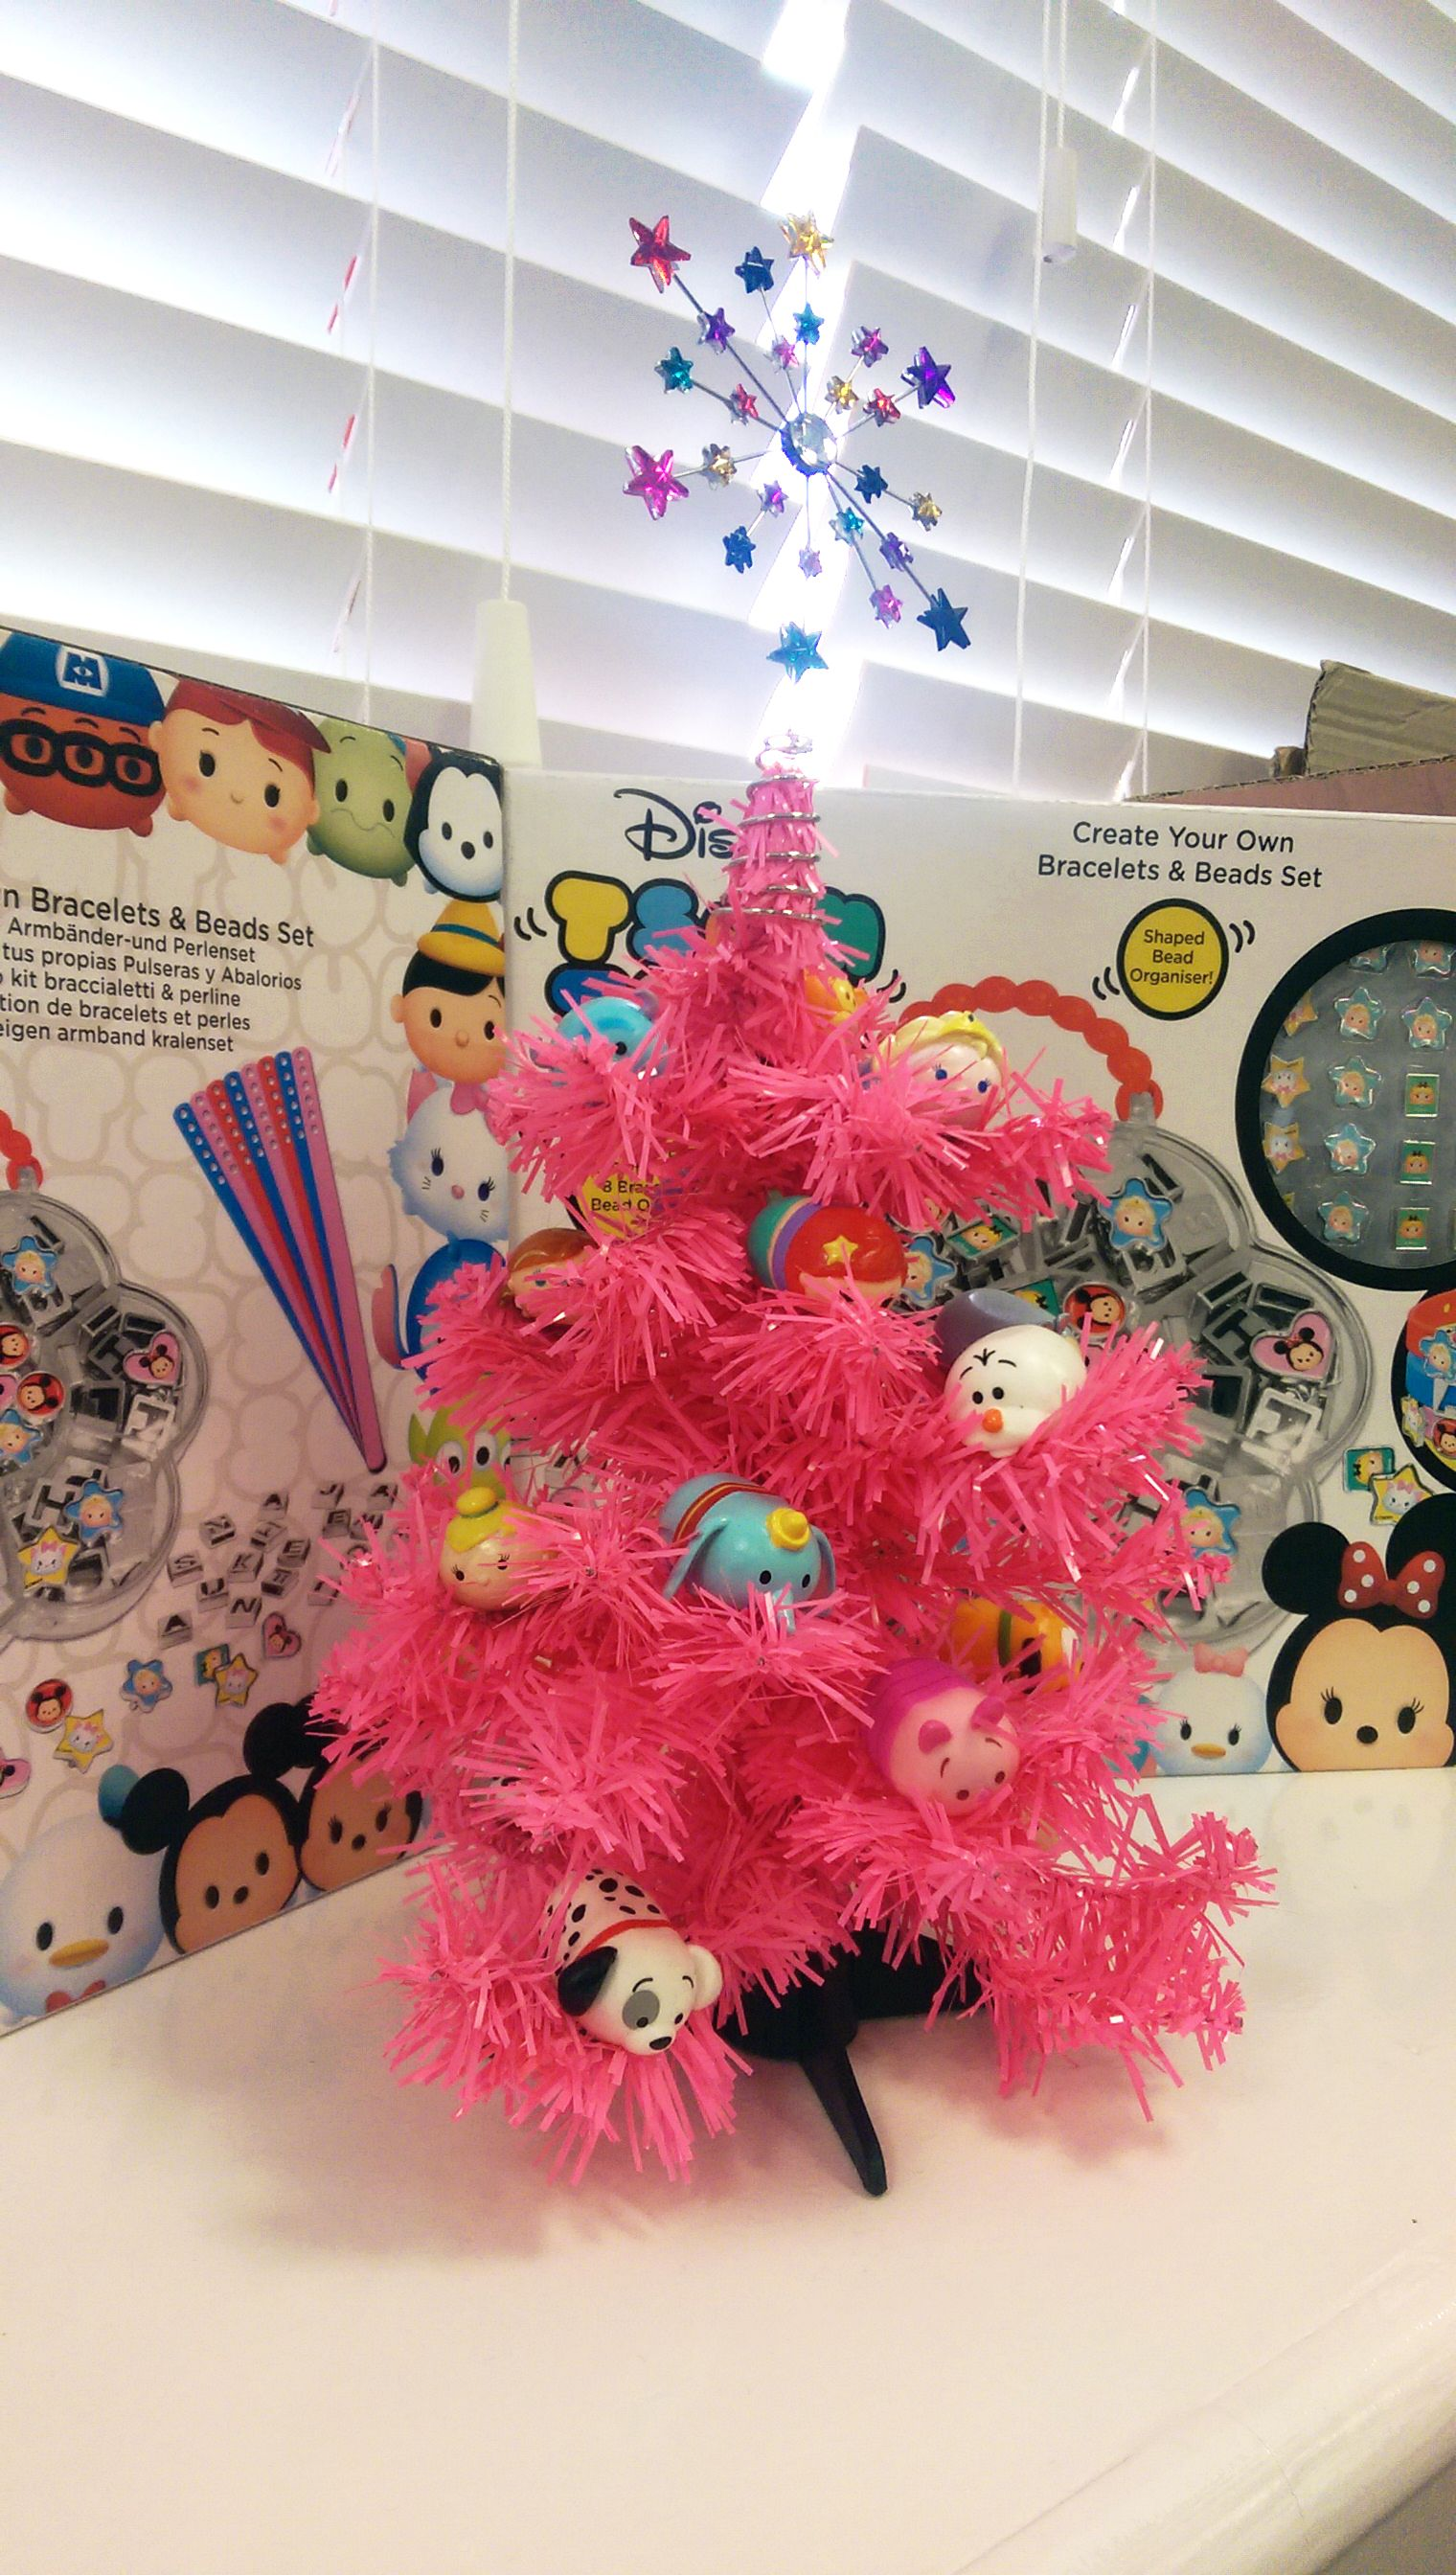 How do you like our office Christmas tree full of Tsum Tsum